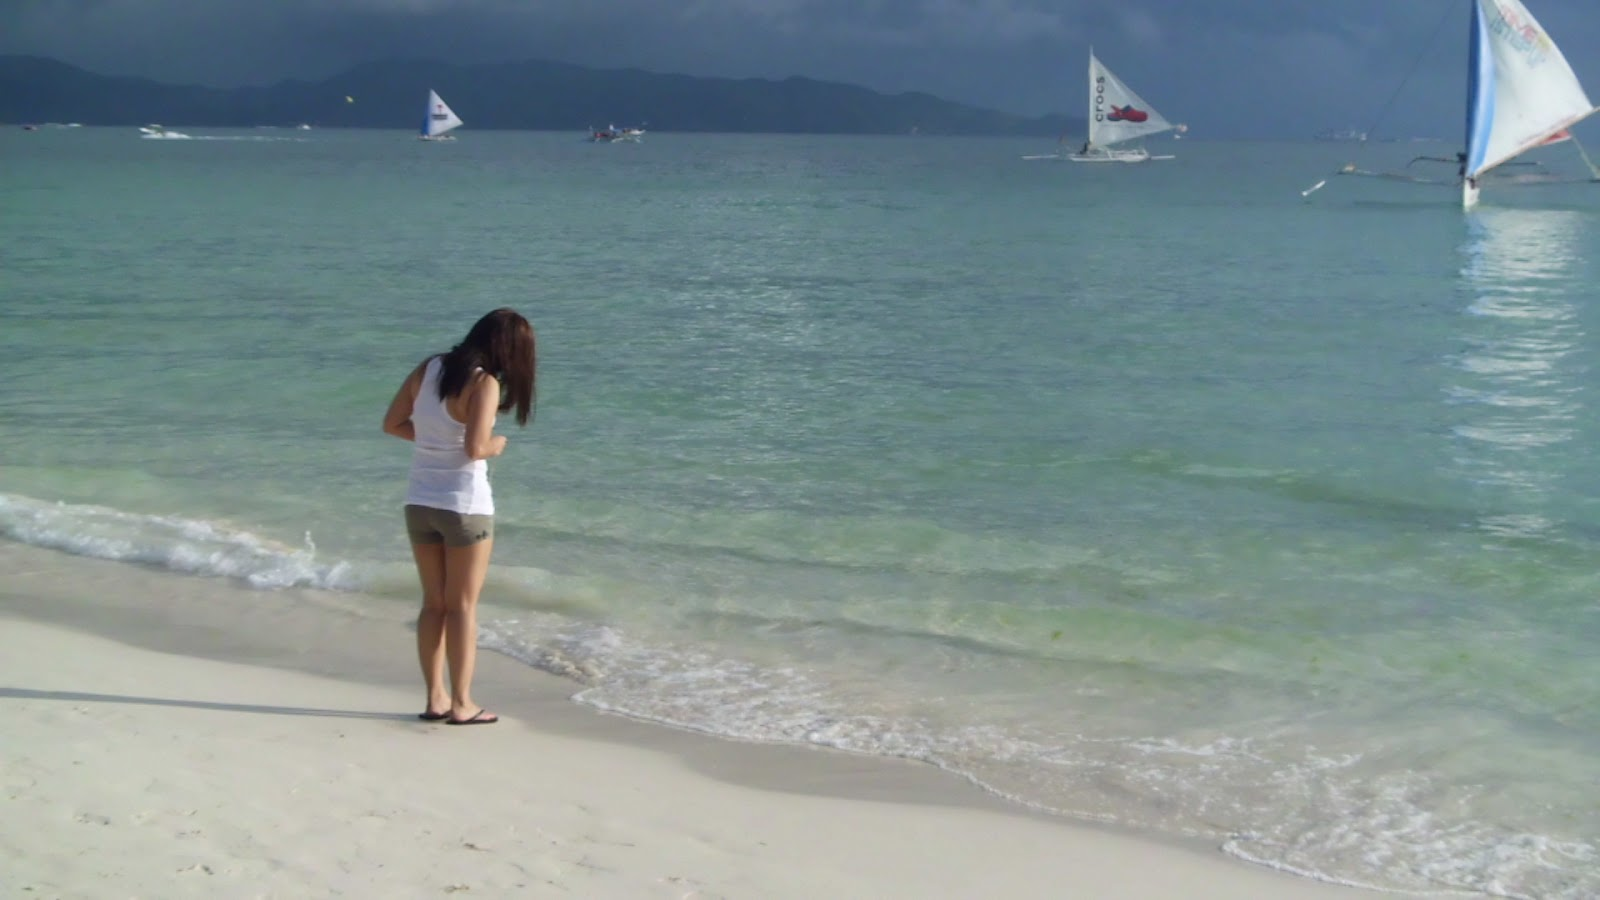 This girl was taking a photo of her feet in the sand. Typical of everybody, really.